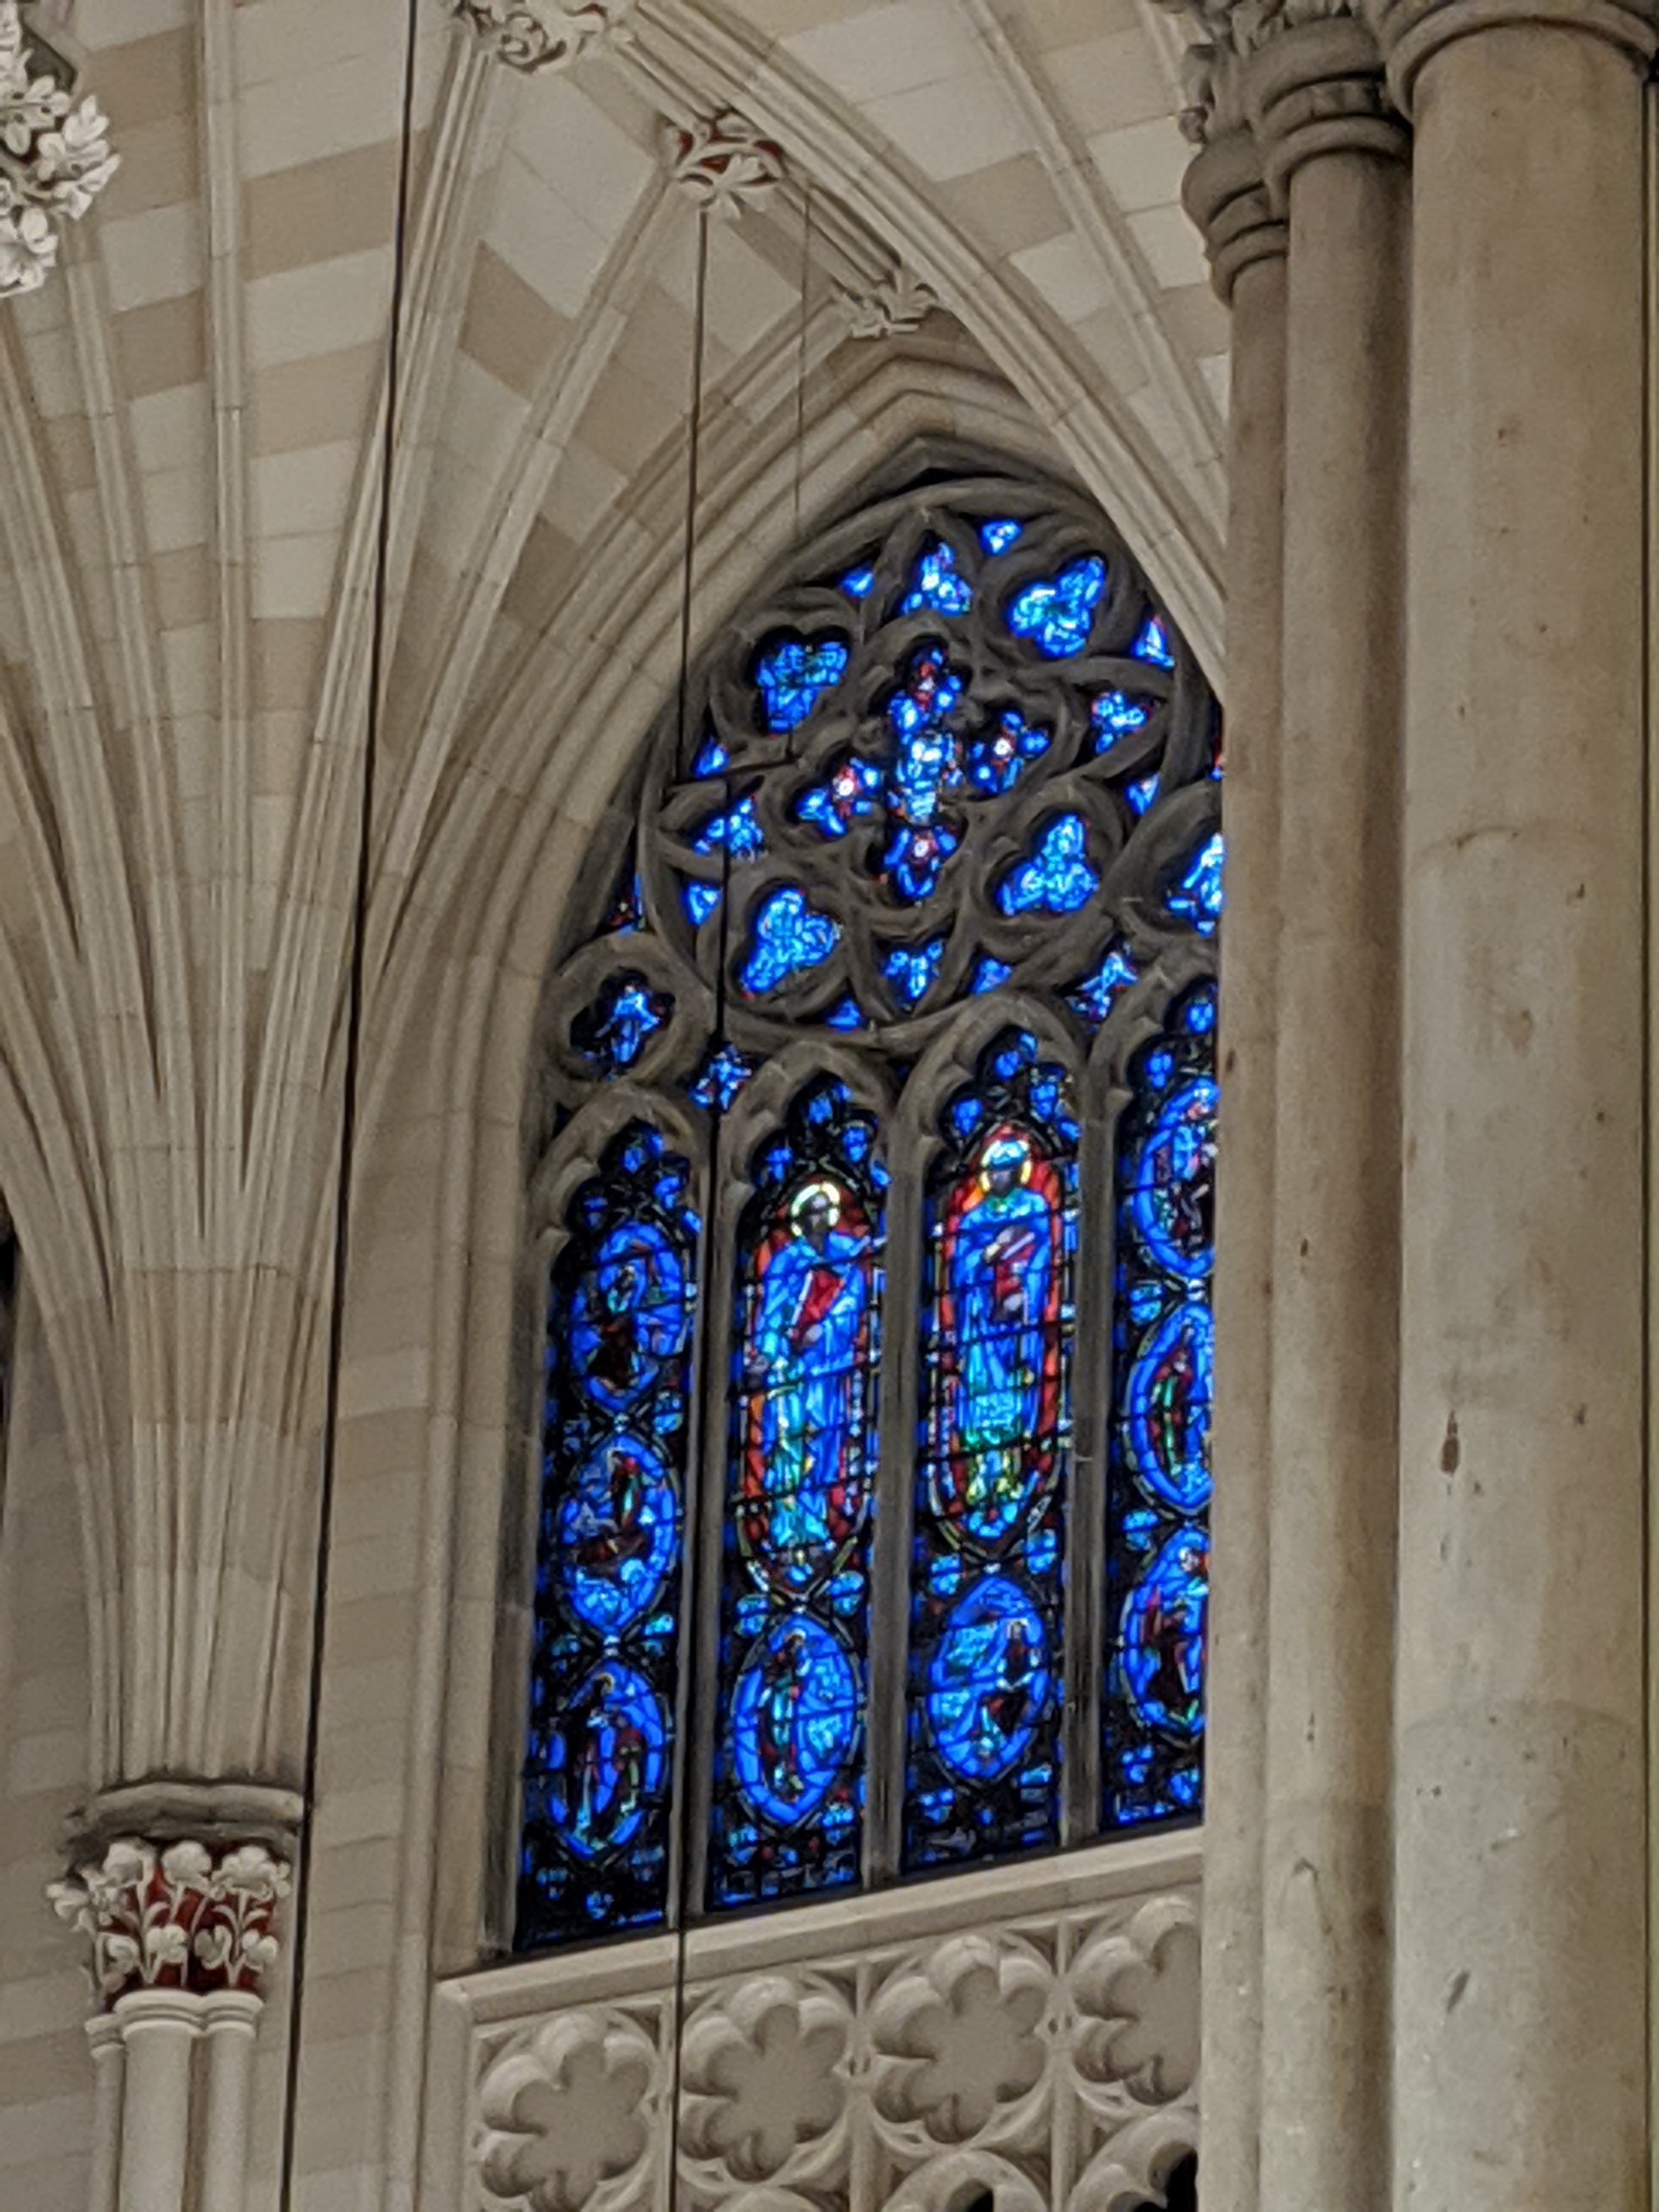 Stained-glass window in St. Patrick's Cathedral